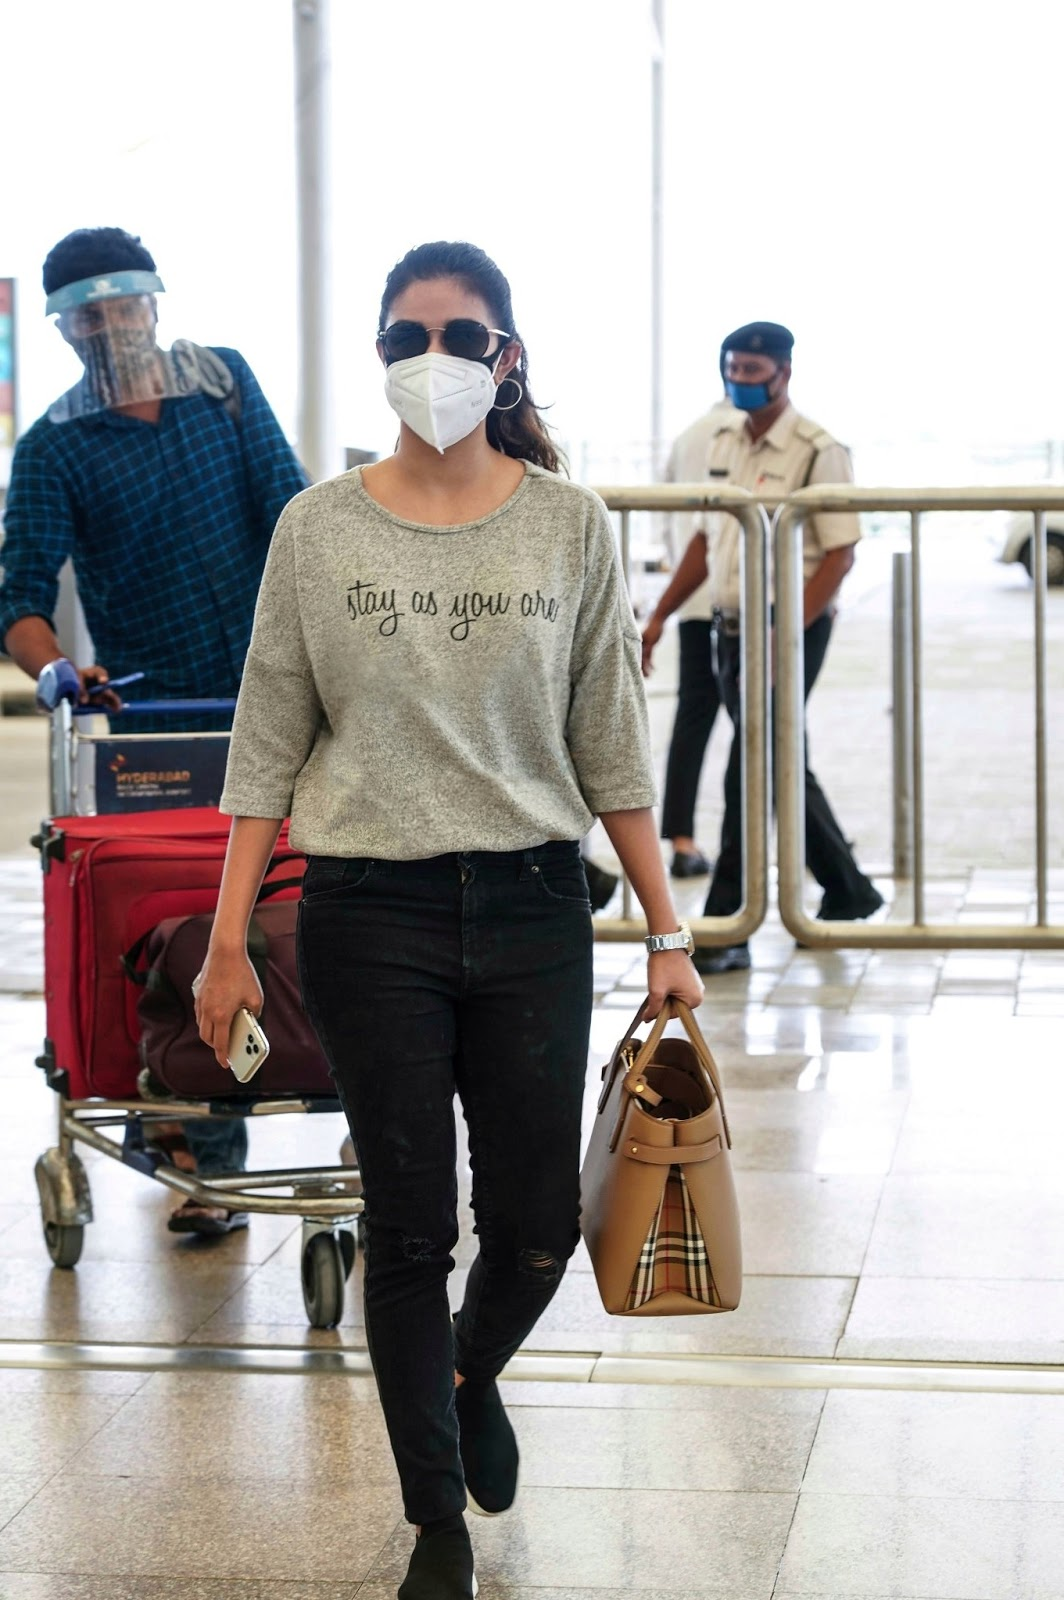 Keerthy Suresh in the Mask with Stunning Walk Style at Hyderabad Airport 2